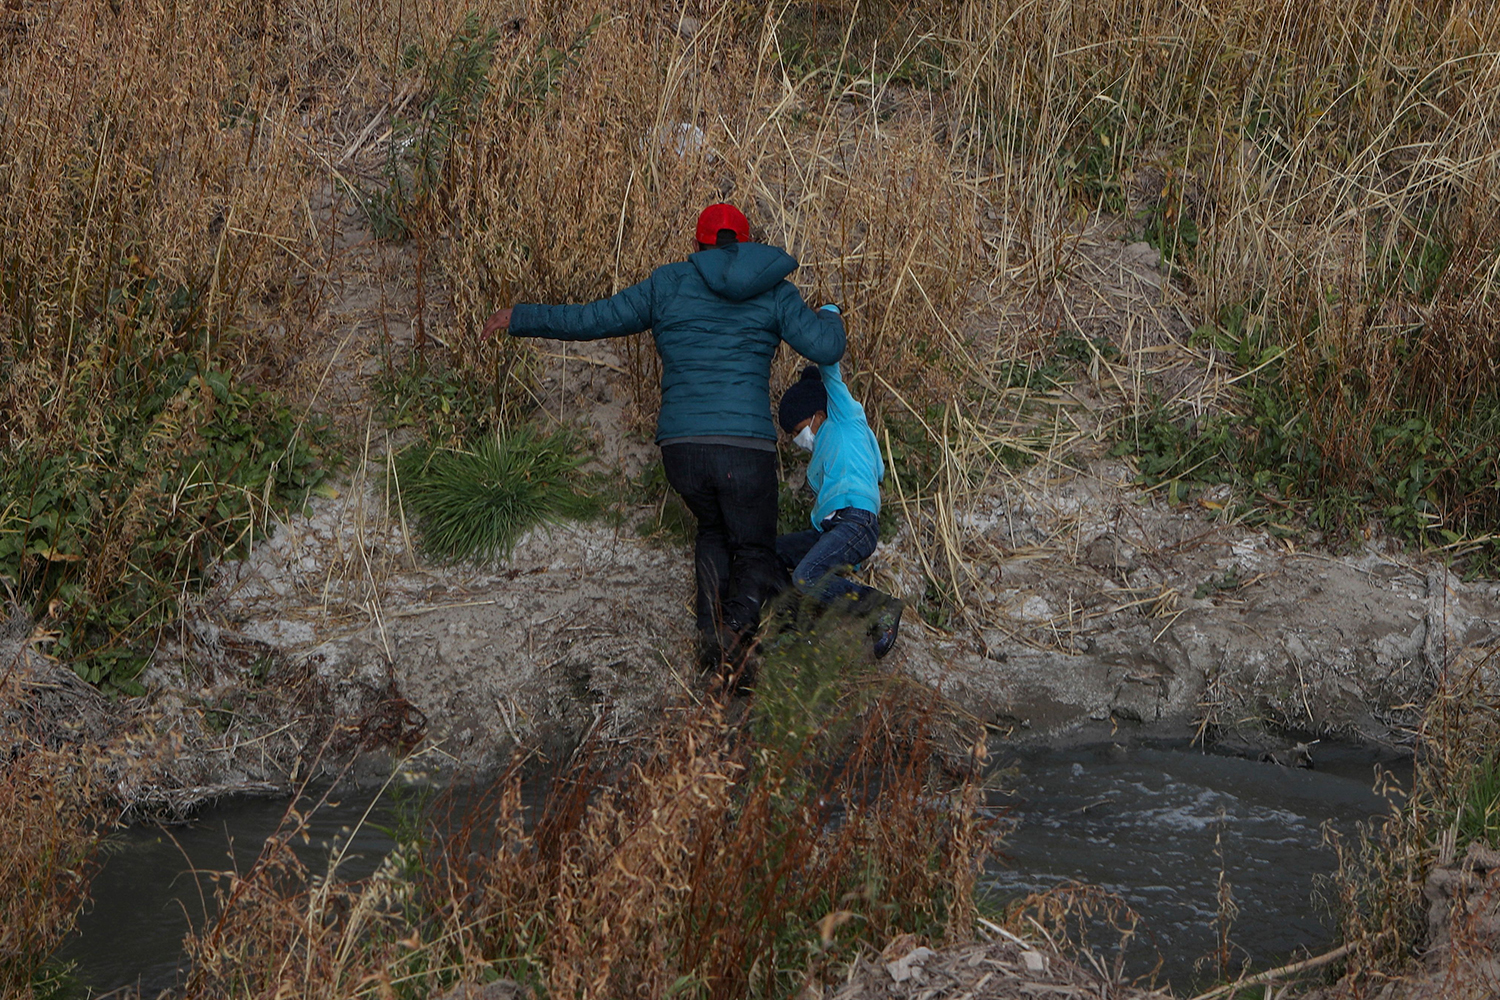 In search of political asylum, a Guatemalan migrant and his son cross the Rio Grande natural border between El Paso, Texas, in the United States and Ciudad Juarez, Chihuahua state, in Mexico on Jan. 26. HERIKA MARTINEZ/AFP via Getty Images